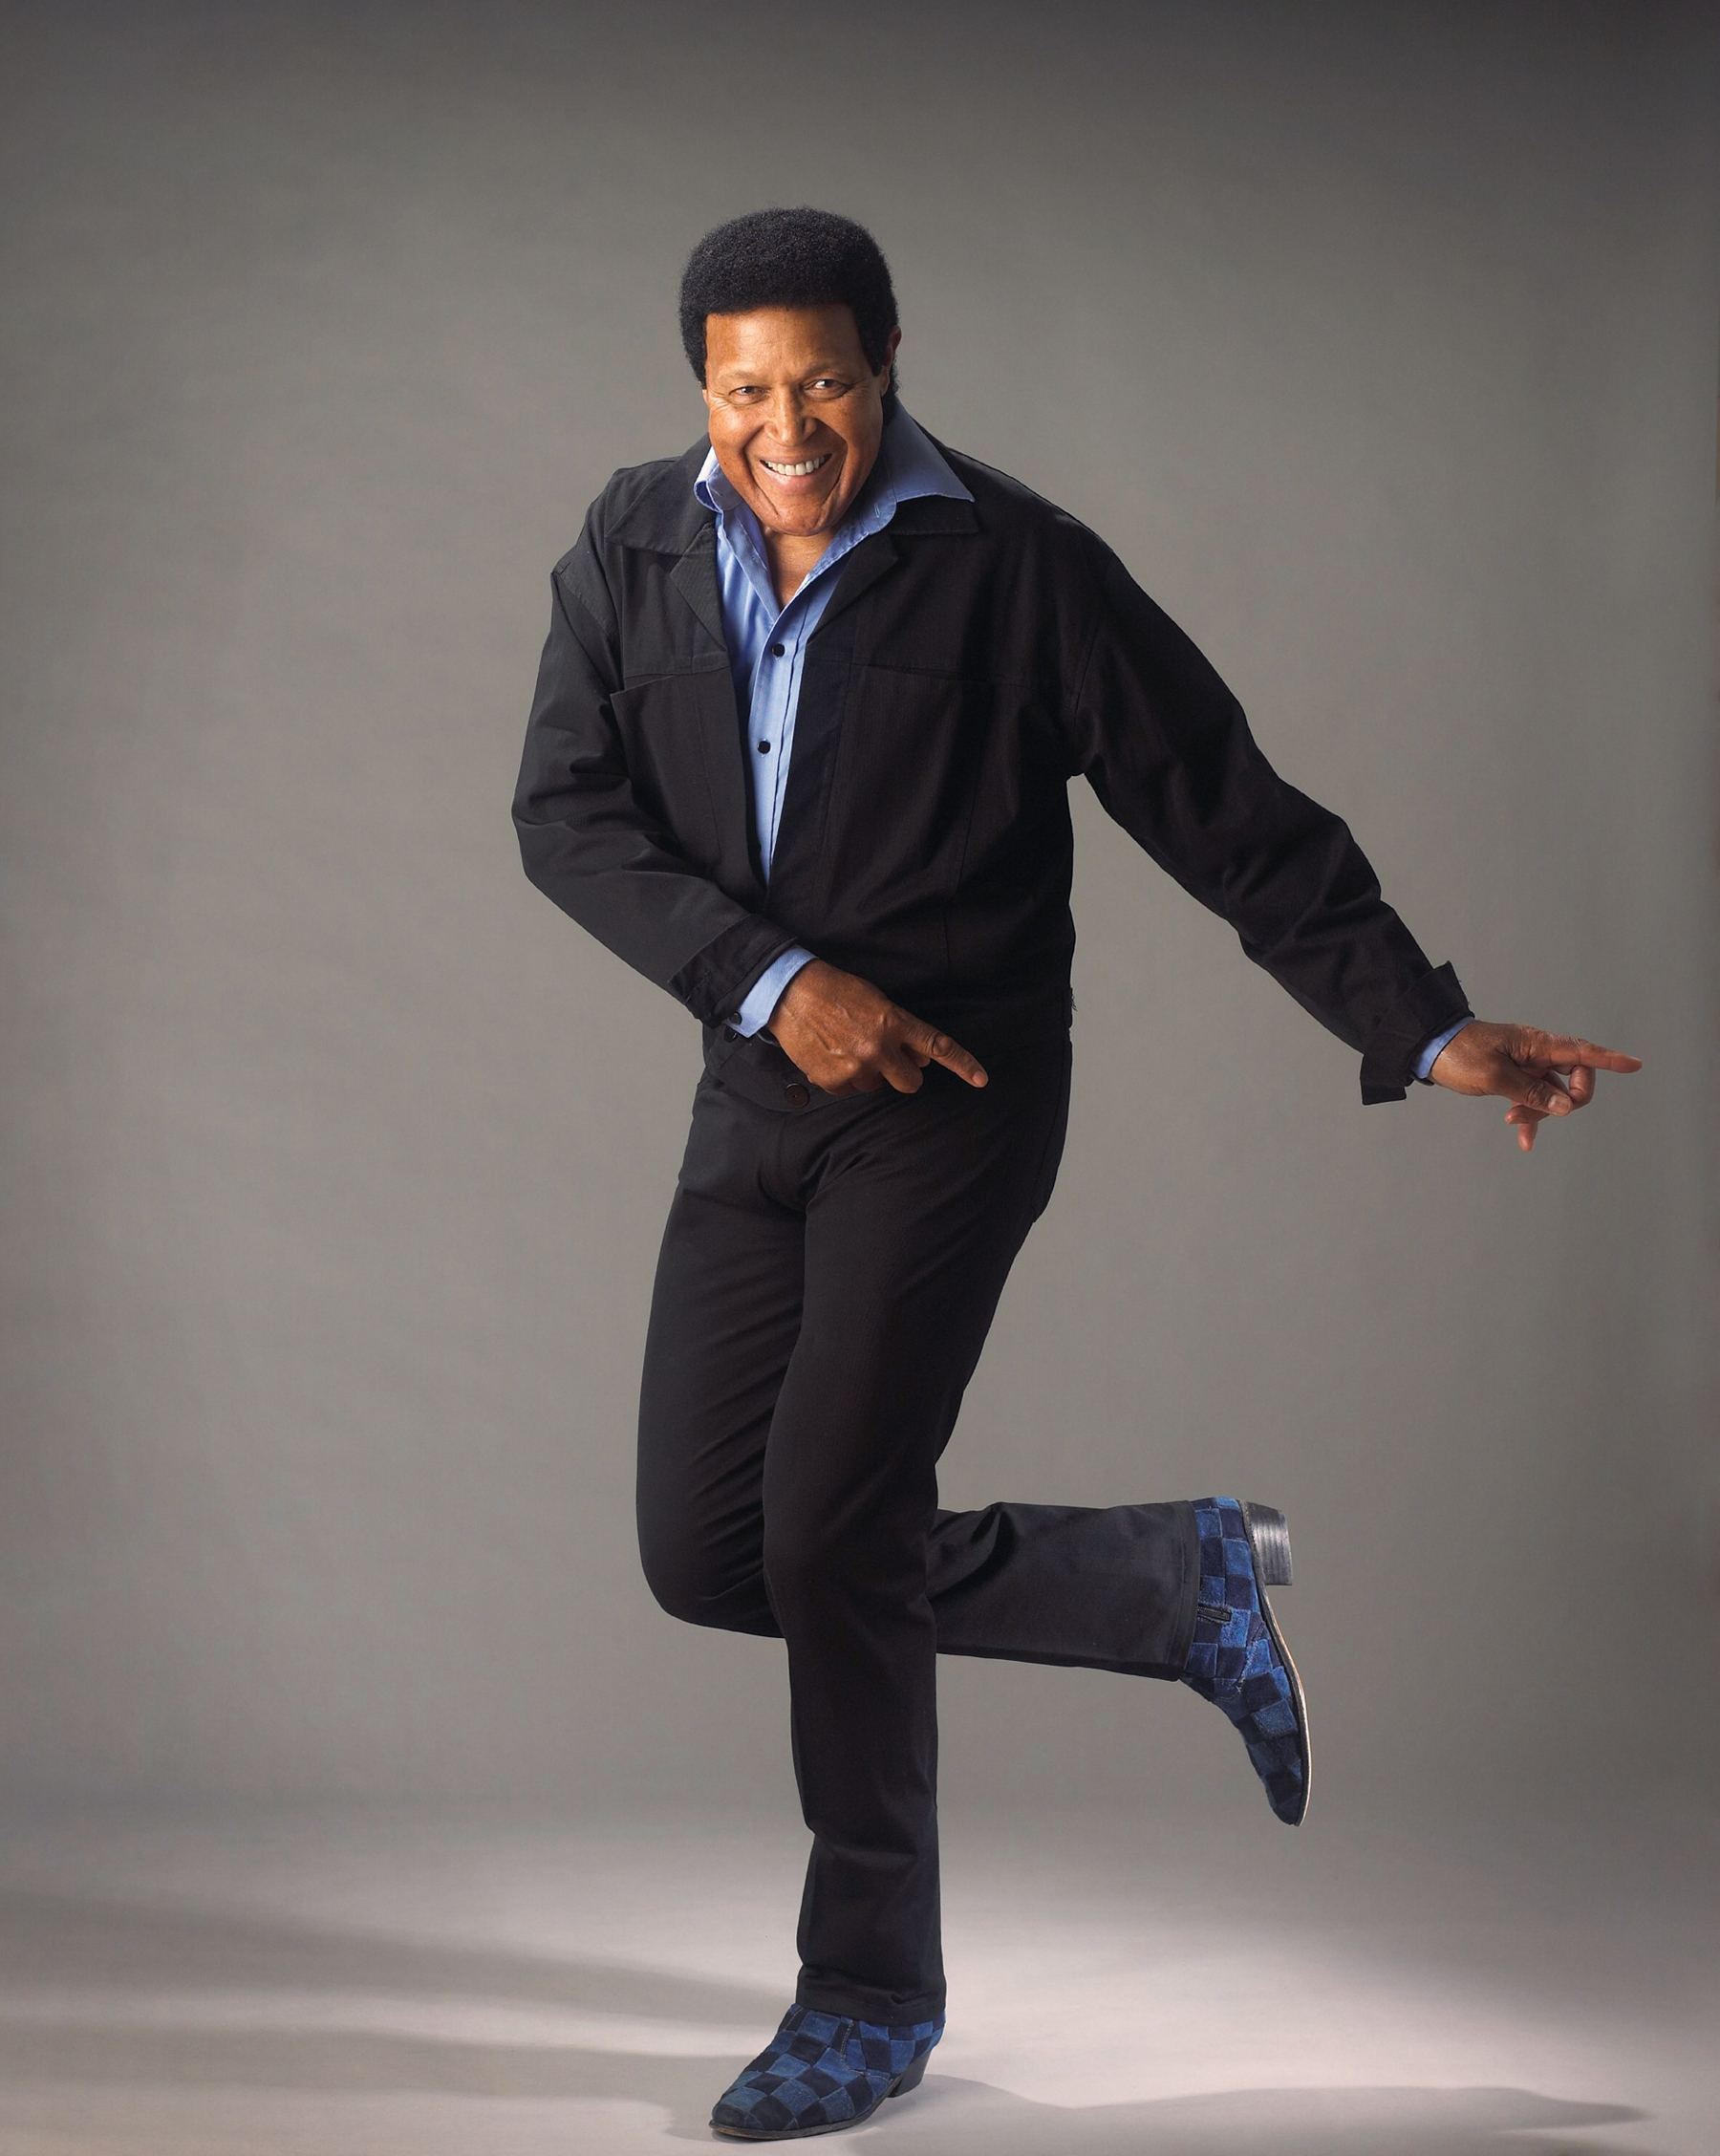 Chubby Checker Reviews Dance Fads From Twerking to Moshing